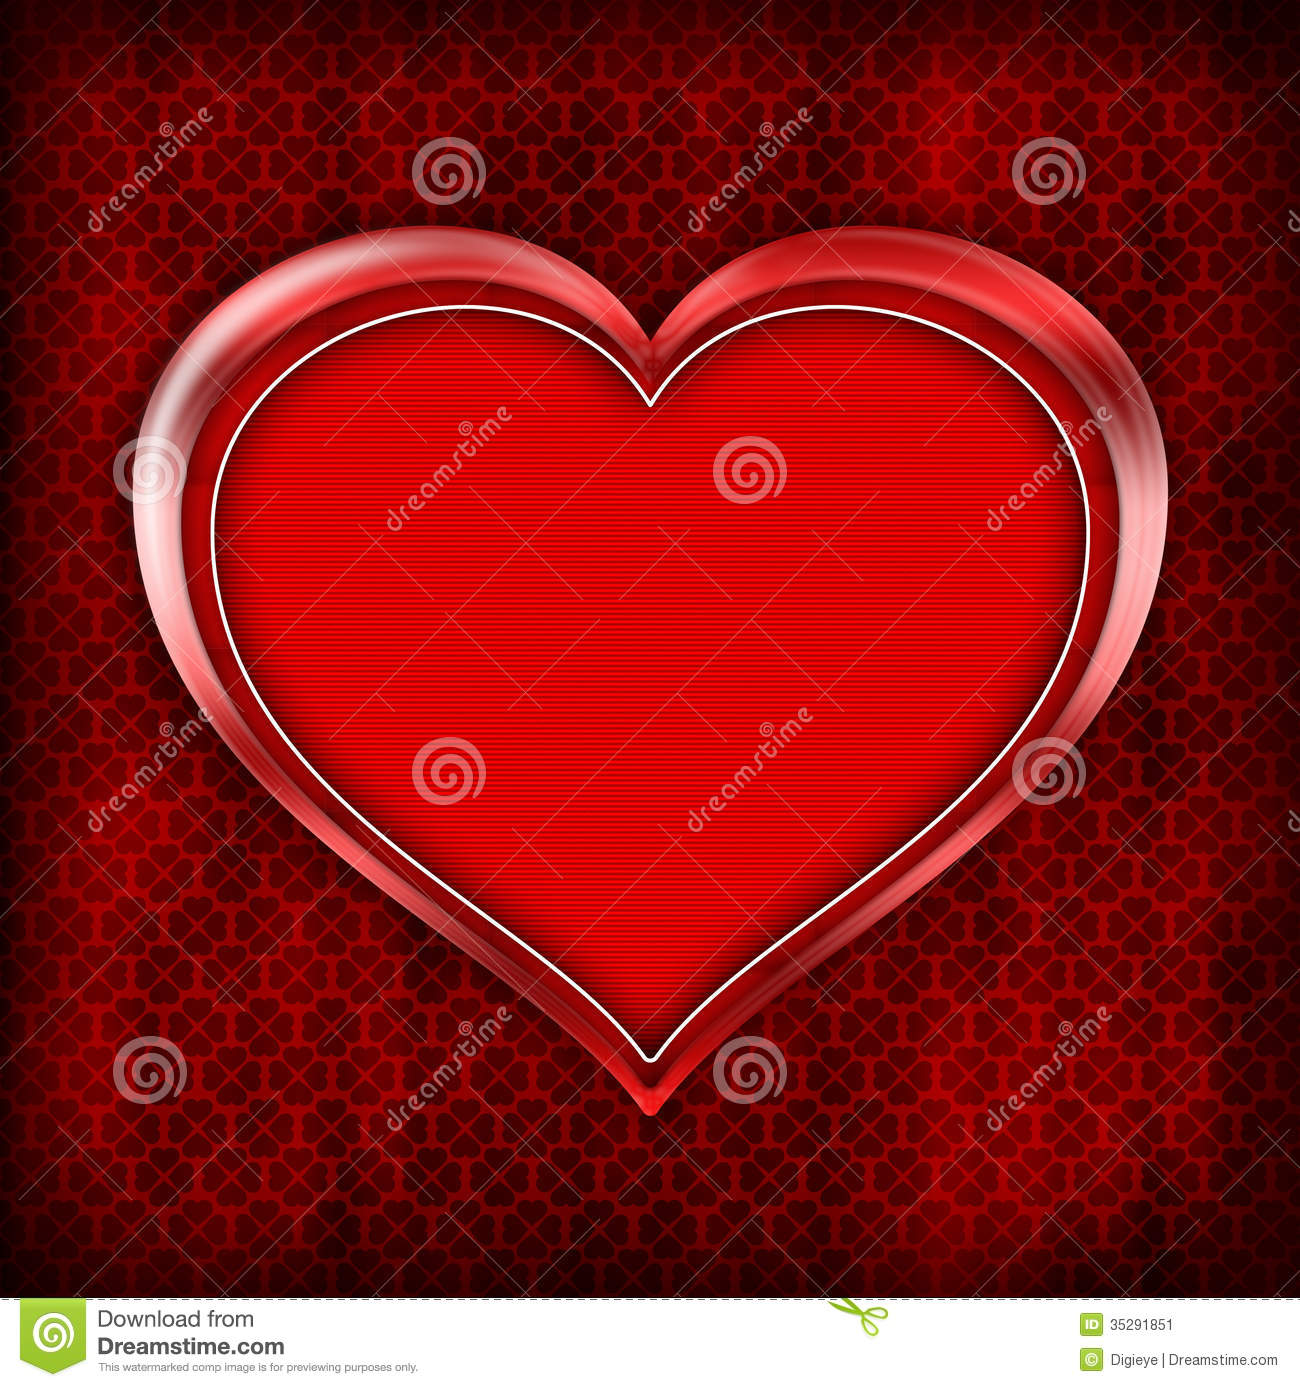 Valentines Day Card Template Stock Image - Image: 35291851